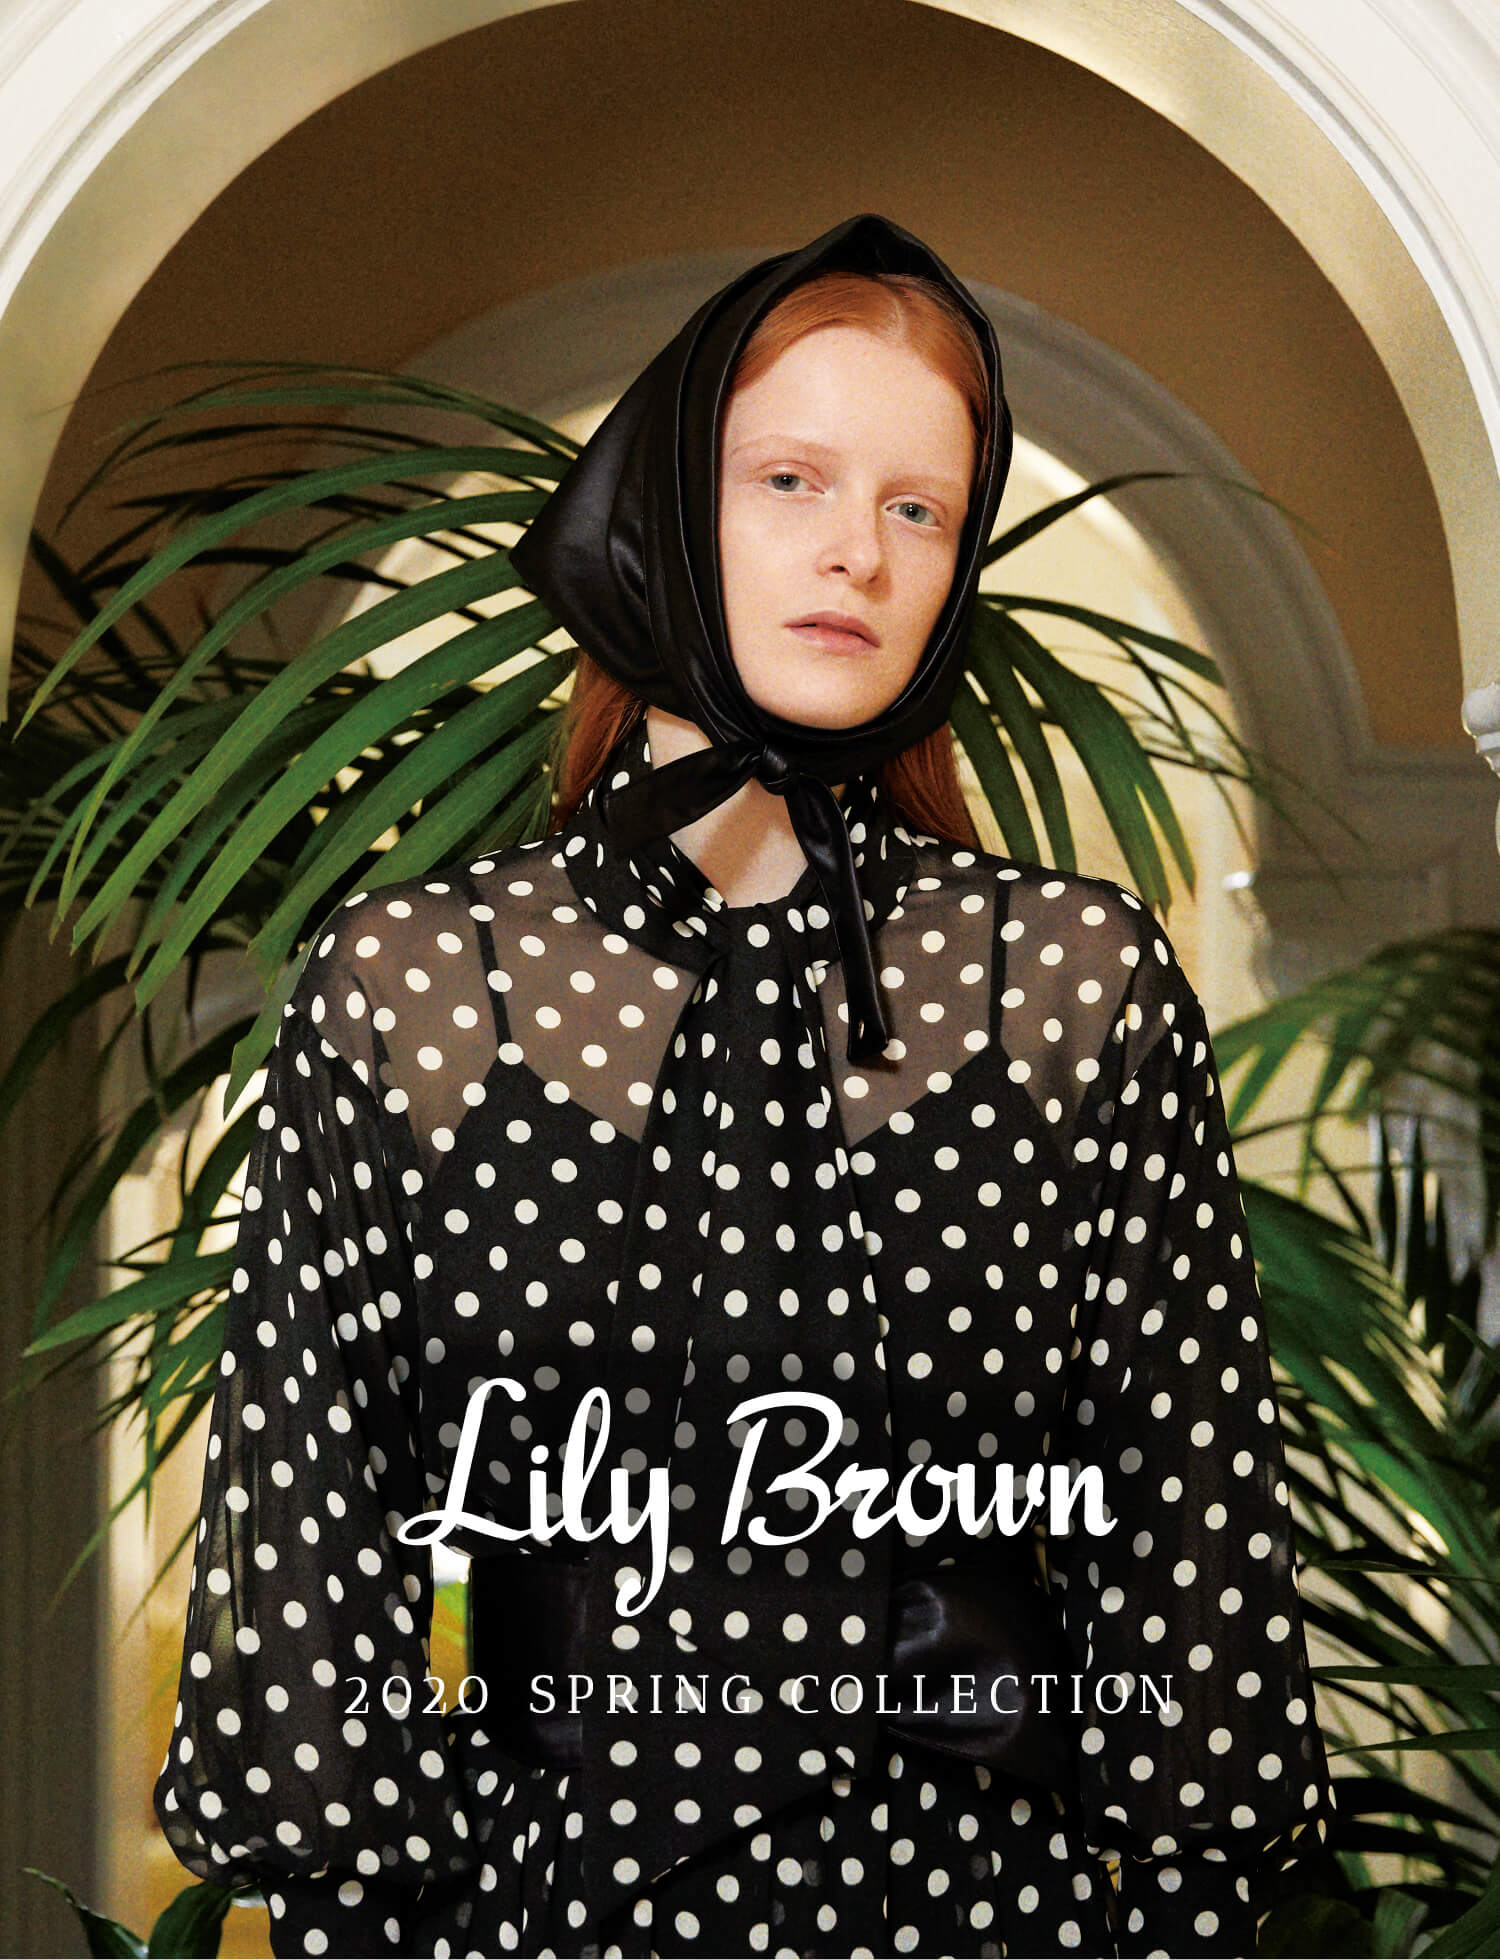 Lily Brown 2020 SPRING COLLECTION